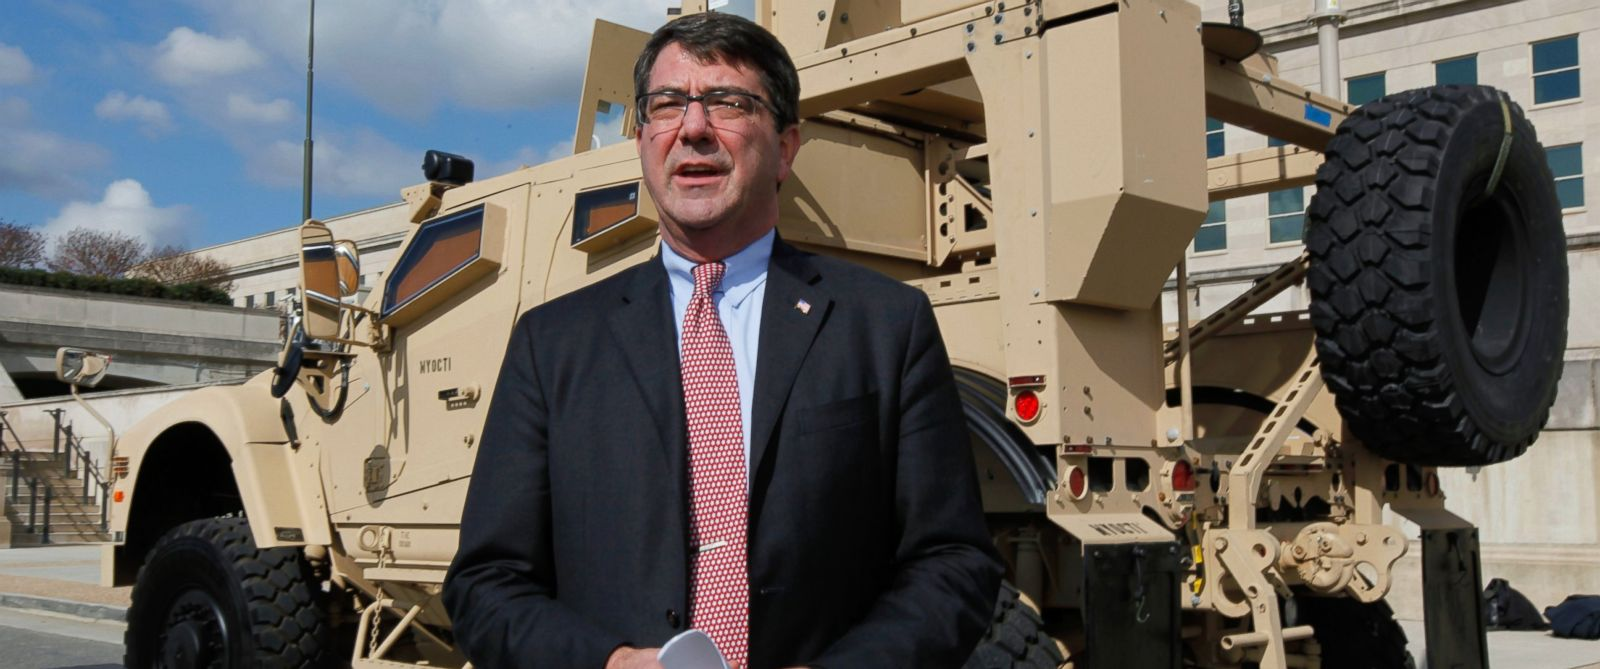 PHOTO: Undersecretary of Defense for Acquisition, Technology and Logistics Ashton Carter speaks during the presentation of the MRAP all terrain vehicle (M-ATV) at the Pentagon, Nov. 2, 2009, in Washington.